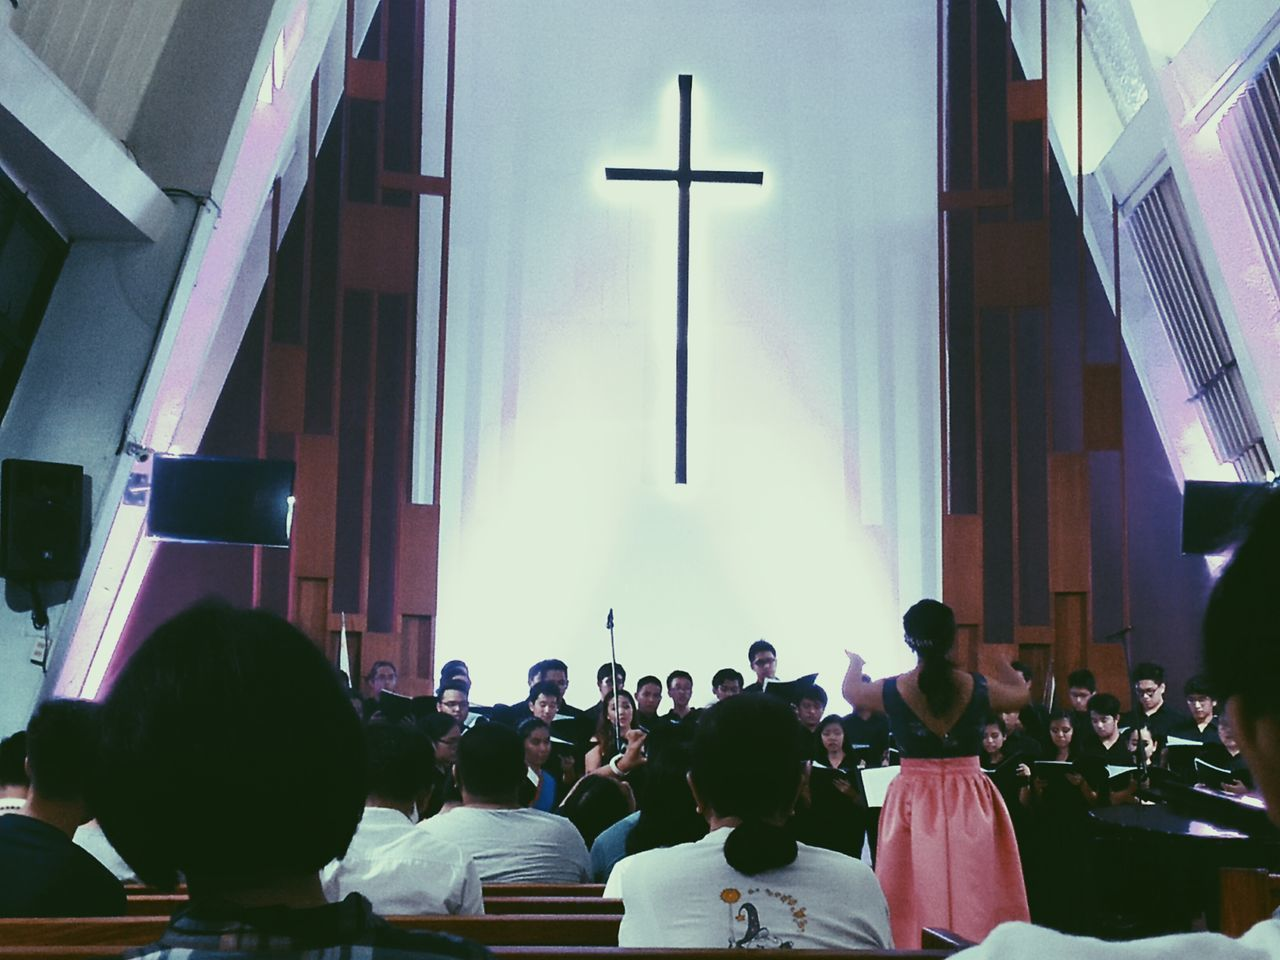 Choir  Recital Conducting Church Mobilephotography